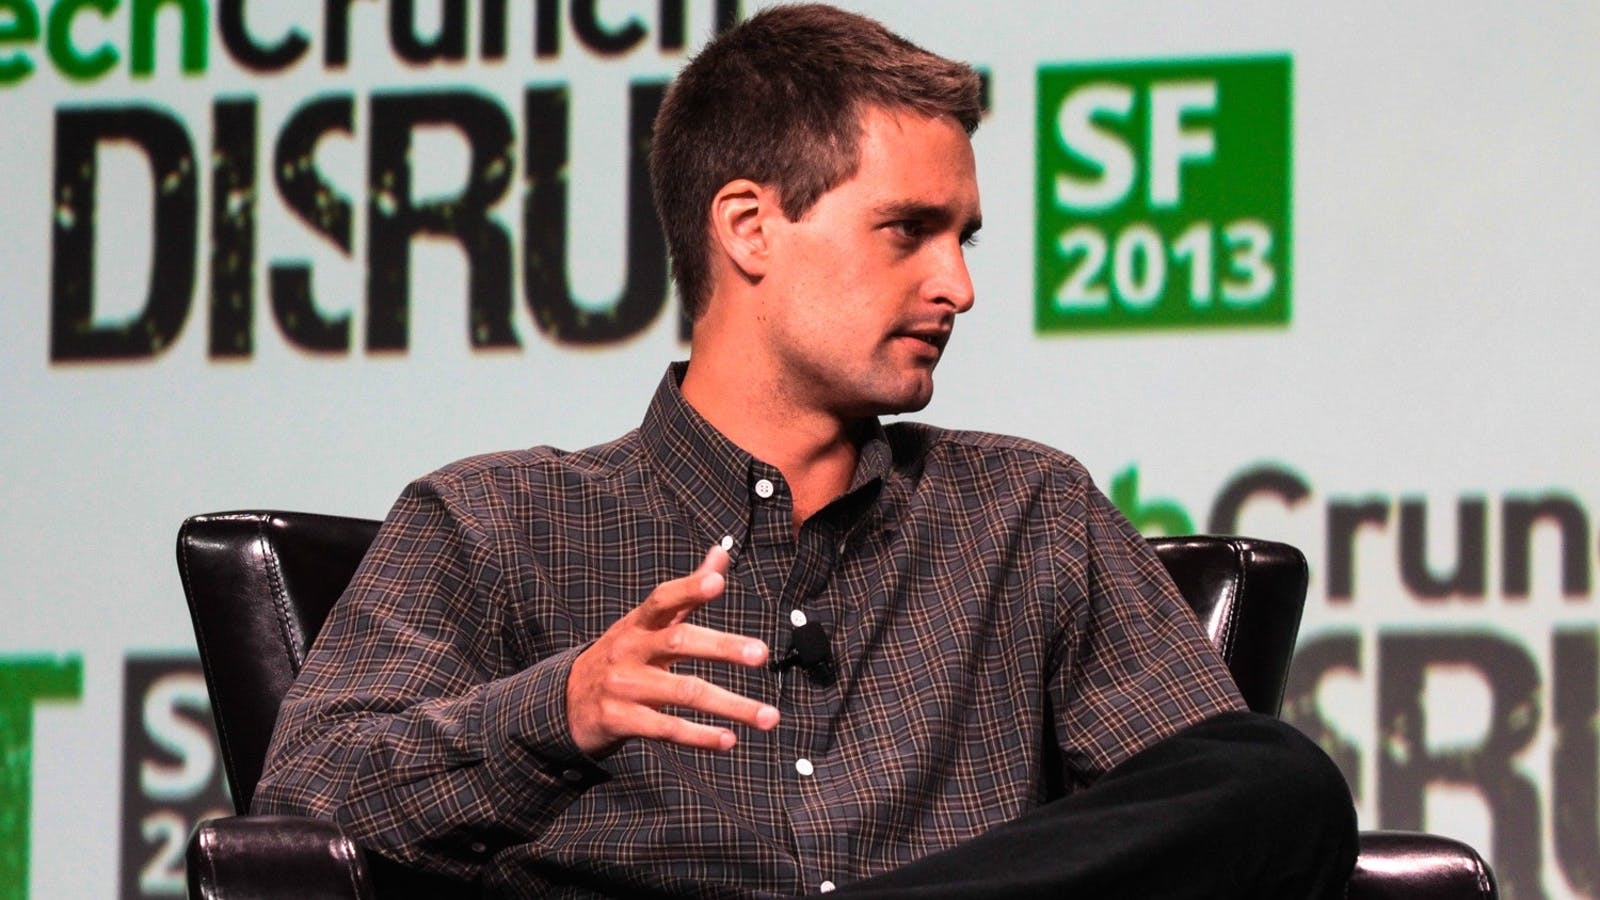 Snapchat CEO Evan Spiegel. Photo by Flickr/TechCrunch.